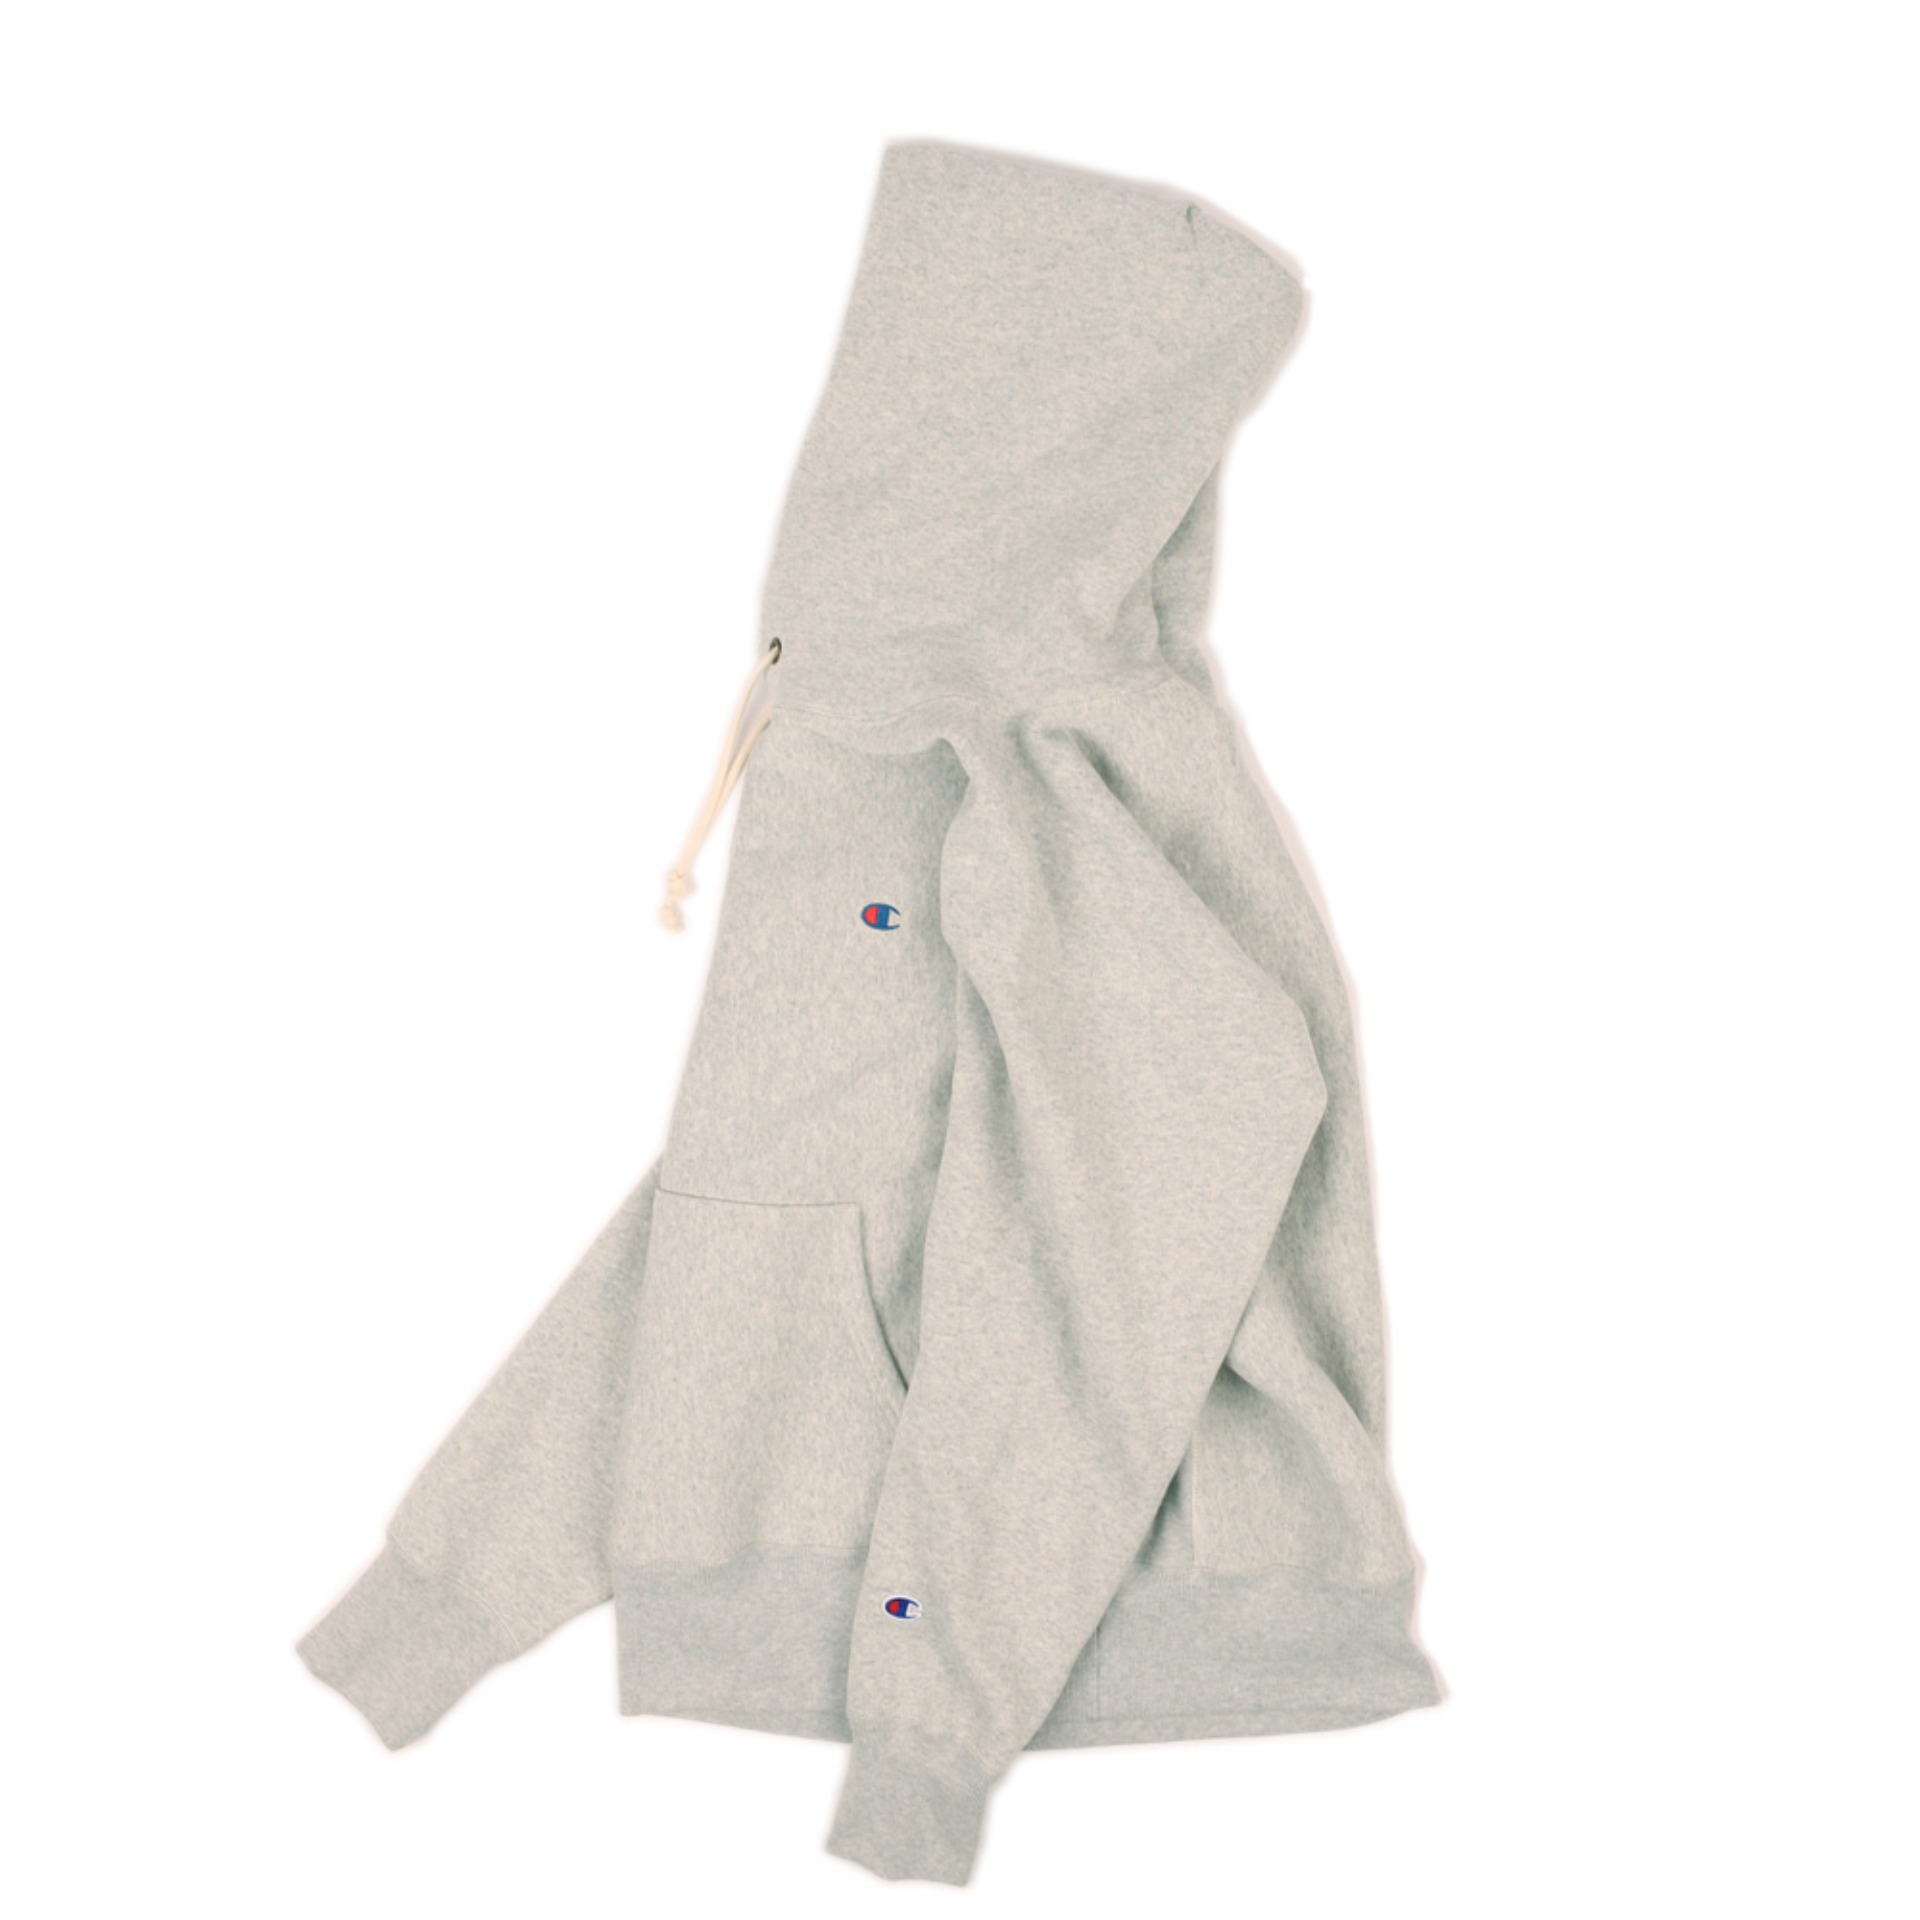 BIG SILHOUETTE HOOD SWEATSHIRT 11.5oz (Melange Gray)